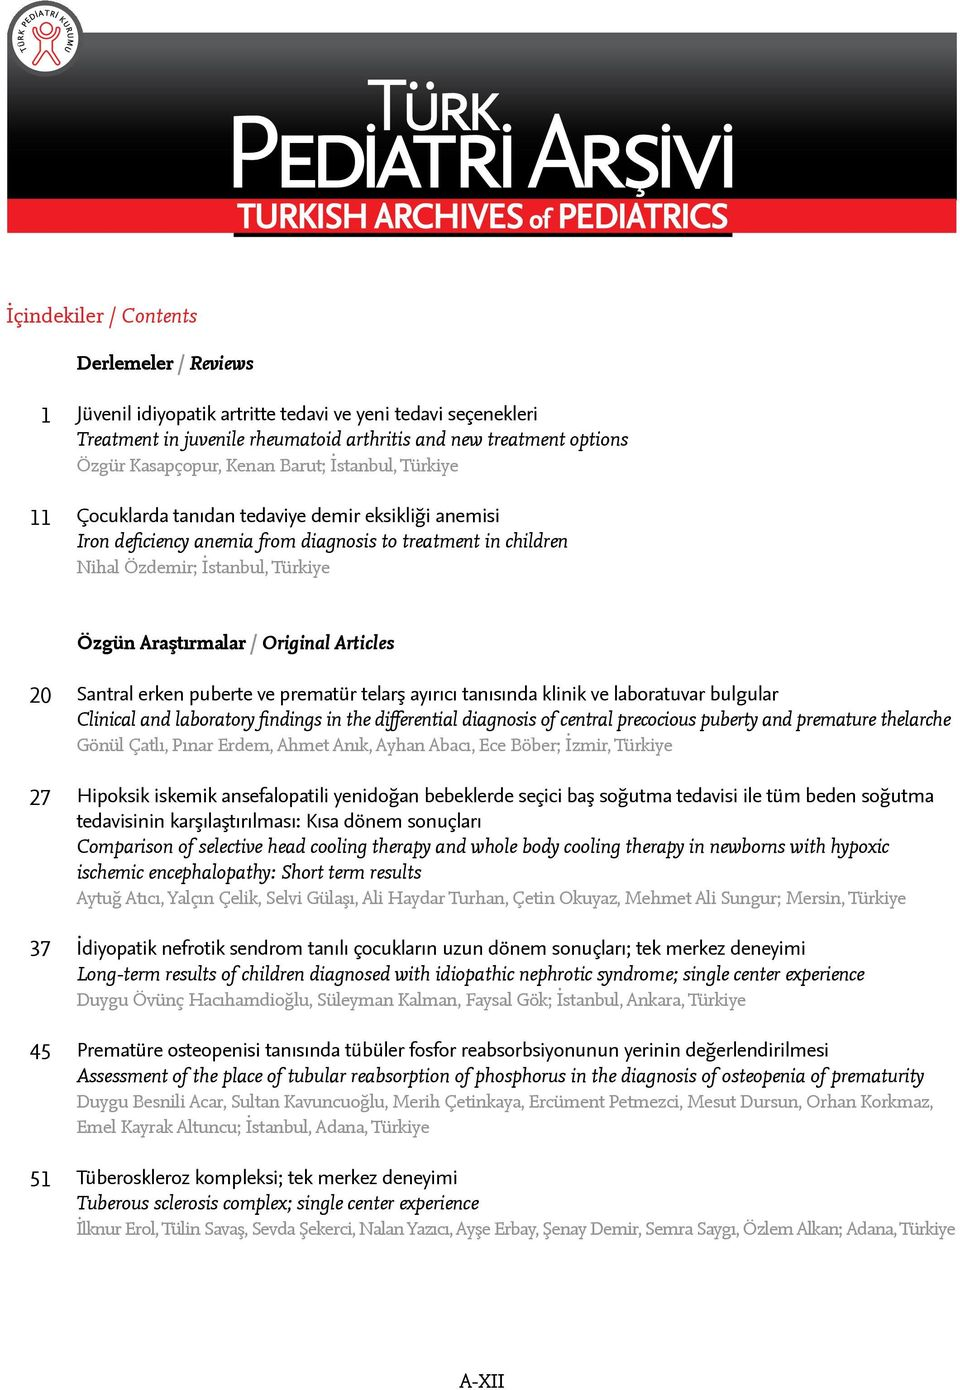 Santral erken puberte ve prematür telarş ayırıcı tanısında klinik ve laboratuvar bulgular Clinical and laboratory findings in the differential diagnosis of central precocious puberty and premature